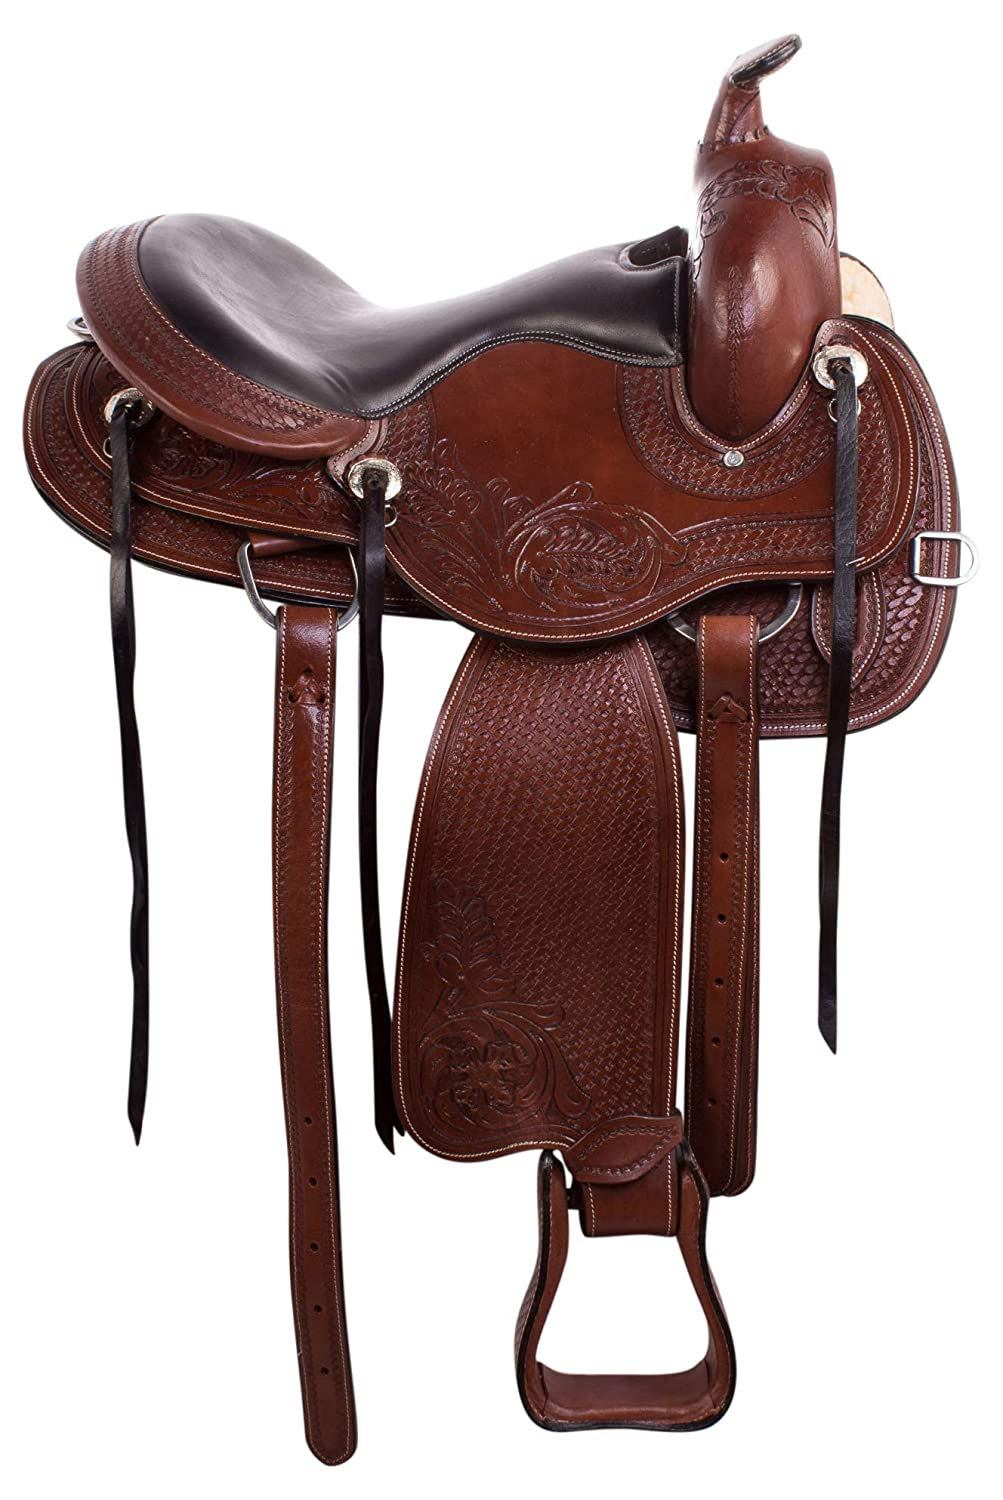 AceRugs Premium Brown Leather Western GAITED Horse Saddle TACK Set Bridle REINS Breastplate Pleasure Trail